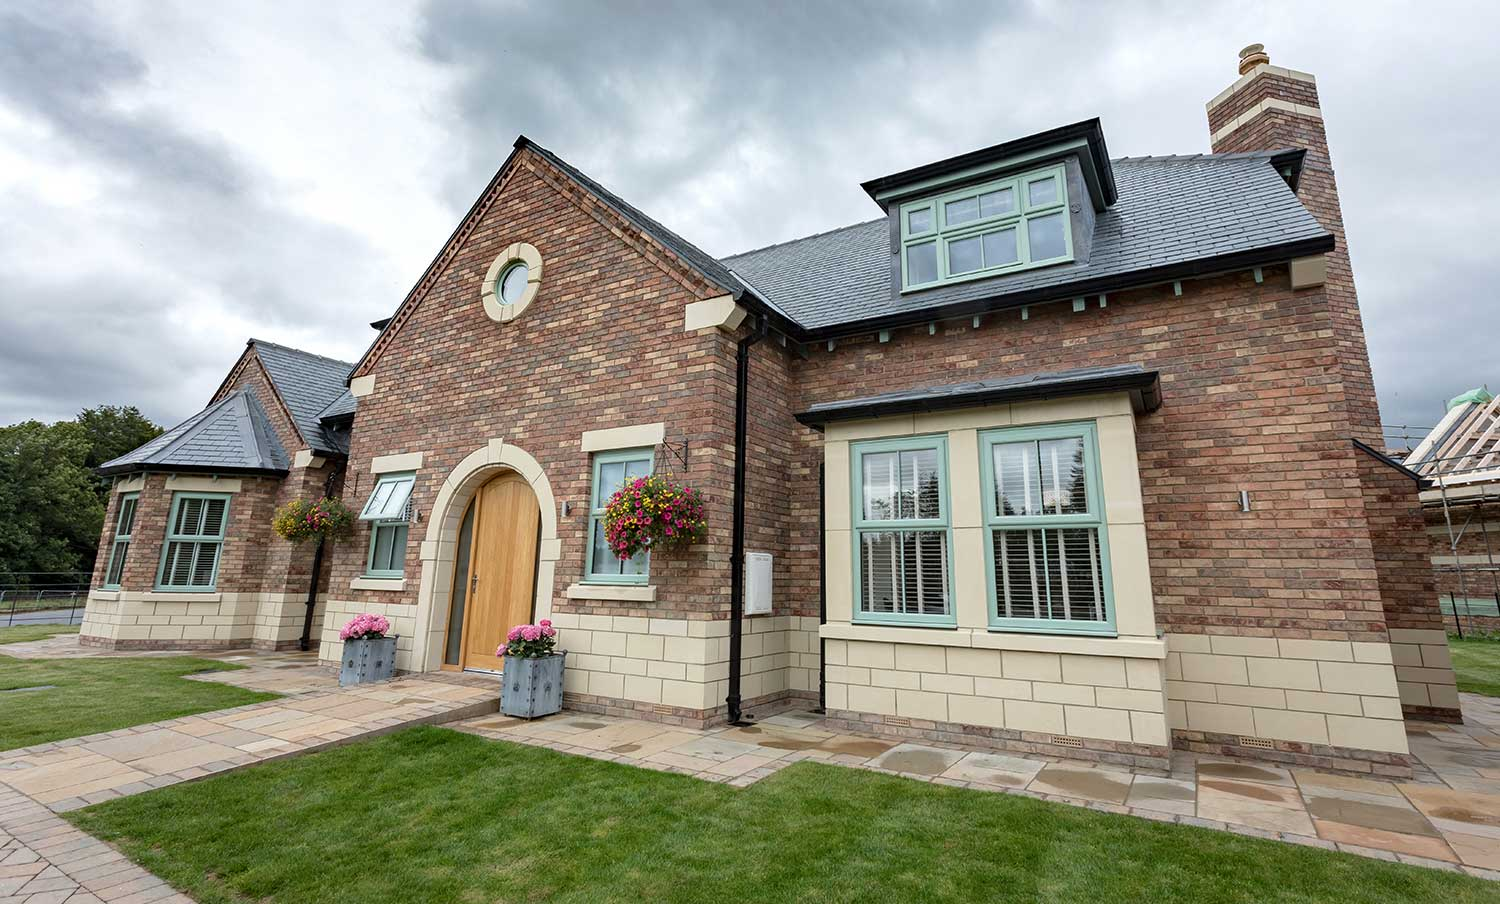 The Poppy, 4-bedroom detached dormer bungalow